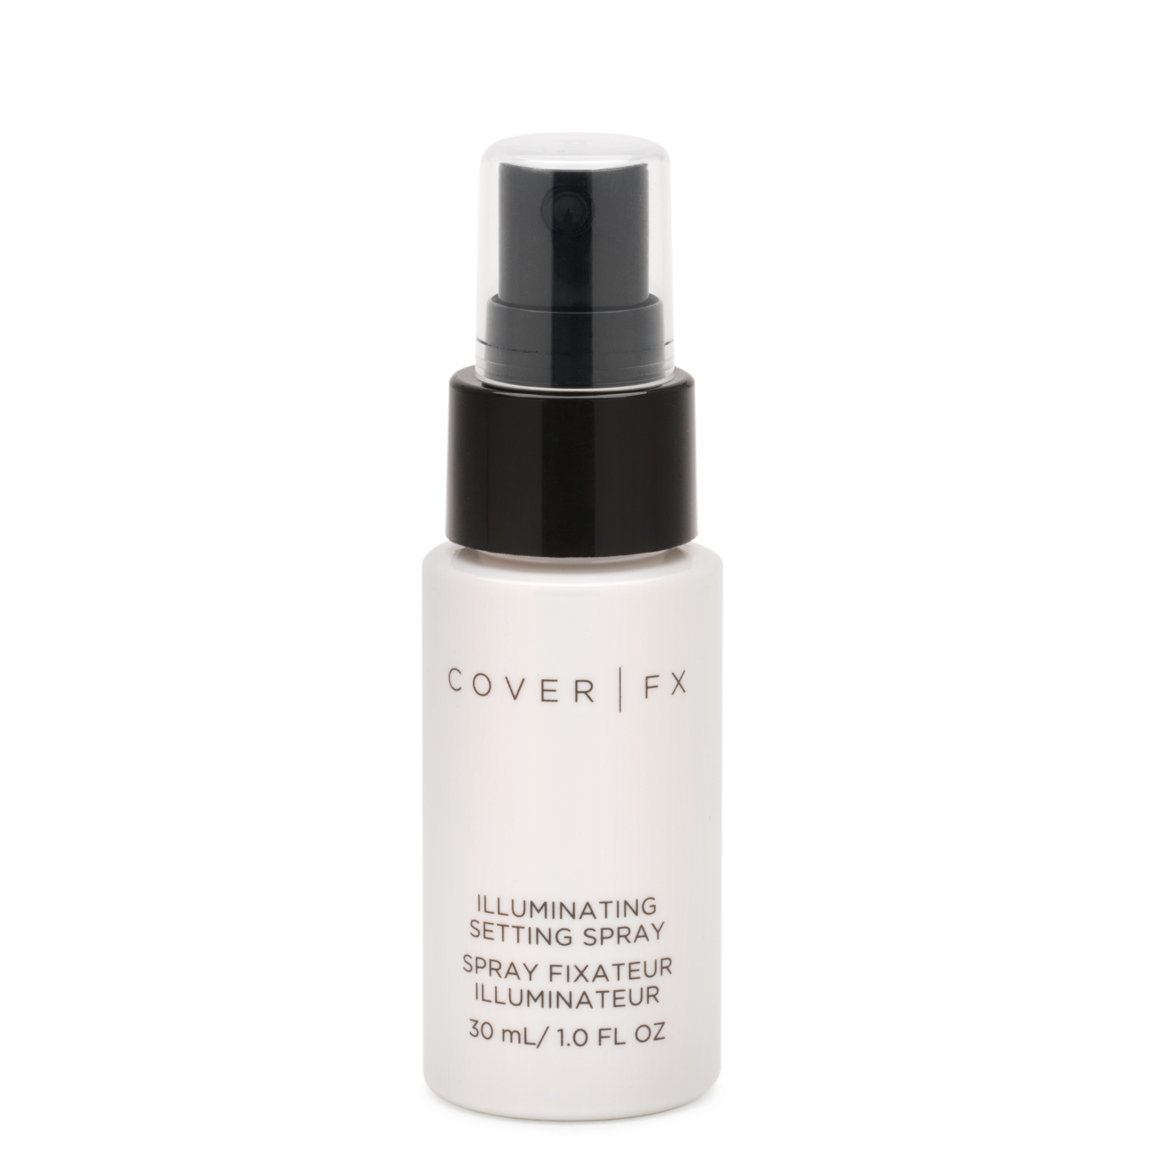 COVER | FX Illuminating Setting Spray 30 ml product swatch.